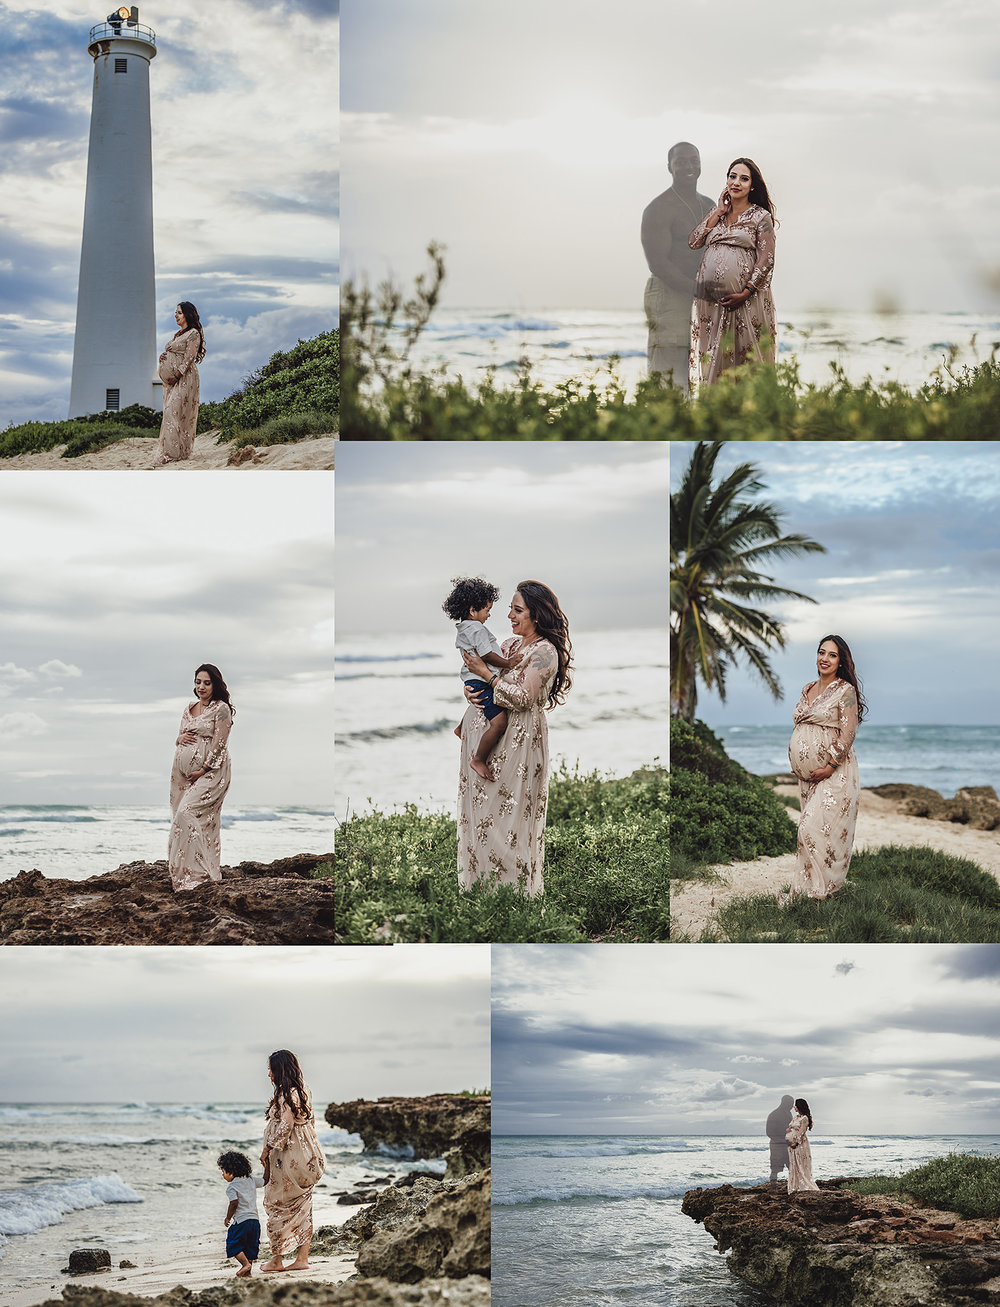 Grieving widow honors husband in maternity session at barbers point beach also known as kalaeloa Beach on Oahu Hawaii